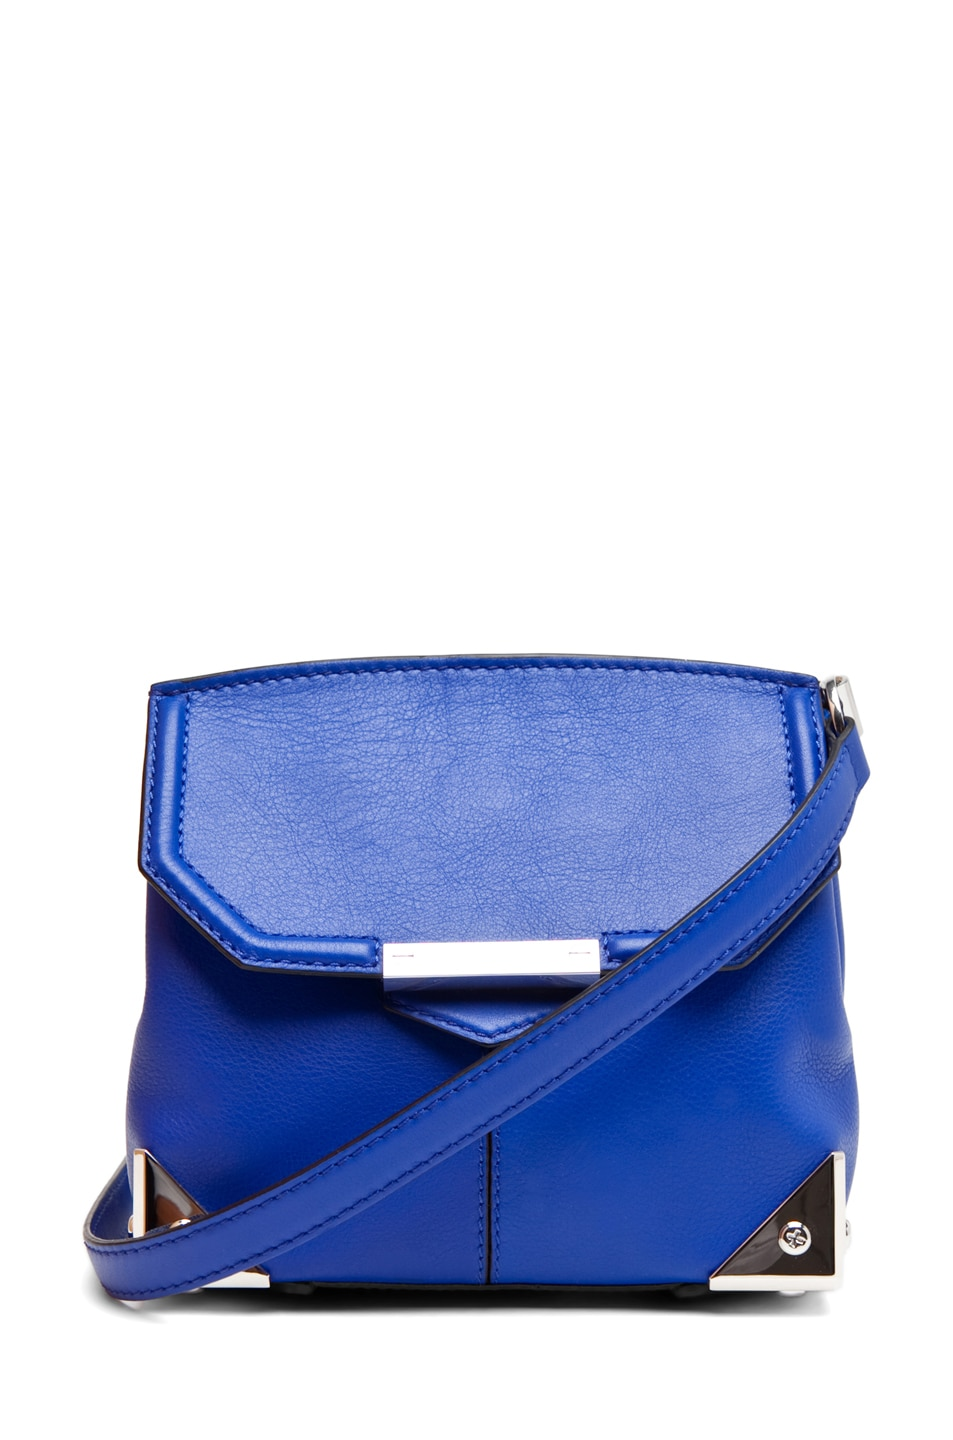 Image 1 of Alexander Wang Marion Sling in Azure